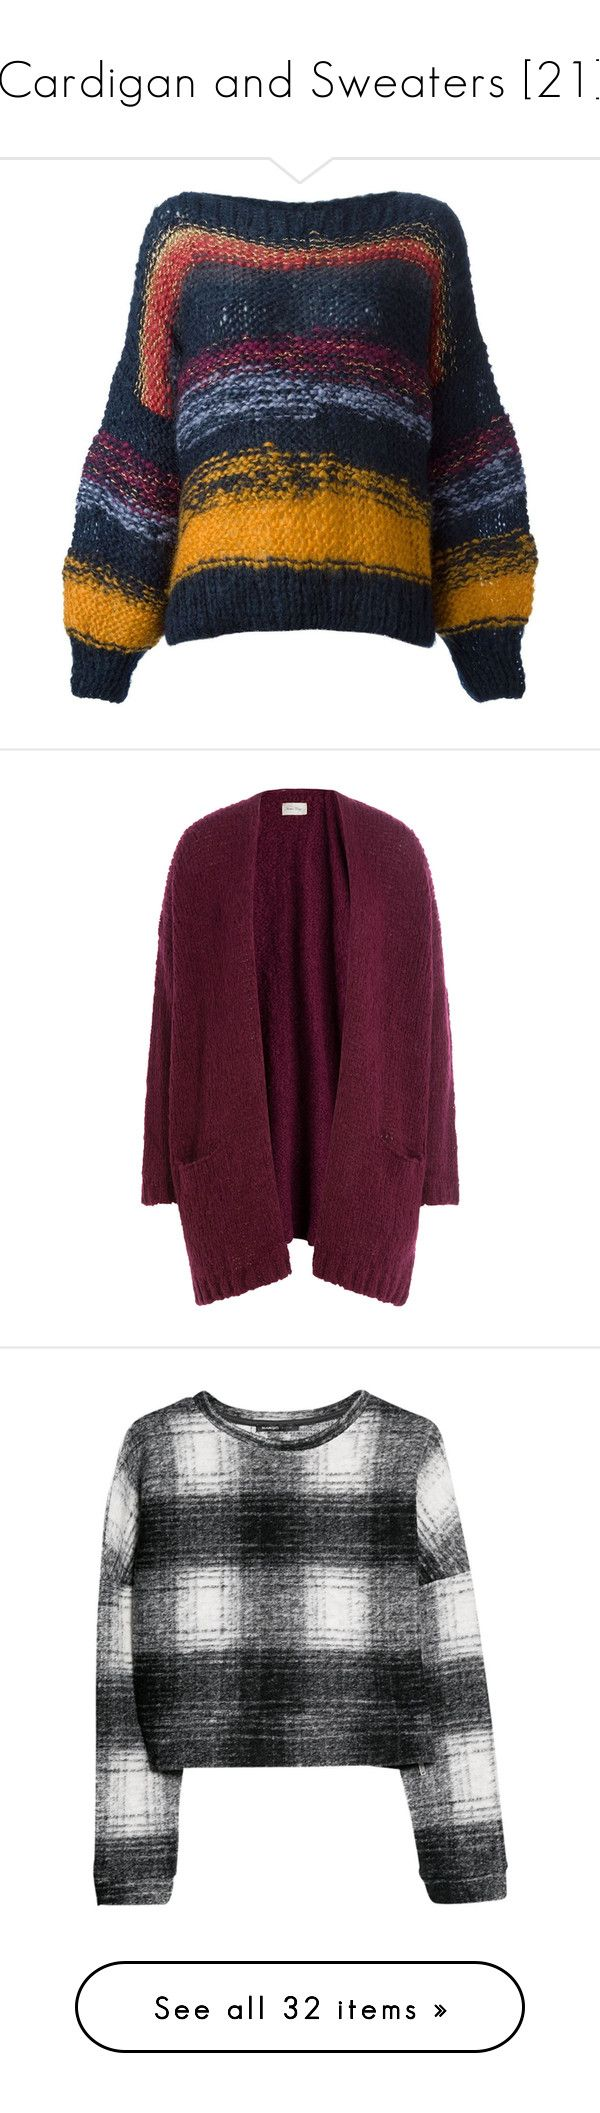 """""""Cardigan and Sweaters [21]"""" by gdavilla ❤ liked on Polyvore featuring tops, sweaters, jumpers, striped sweater, oversized striped sweater, blue knit sweater, striped knit sweater, knit sweater, cardigans and purple"""